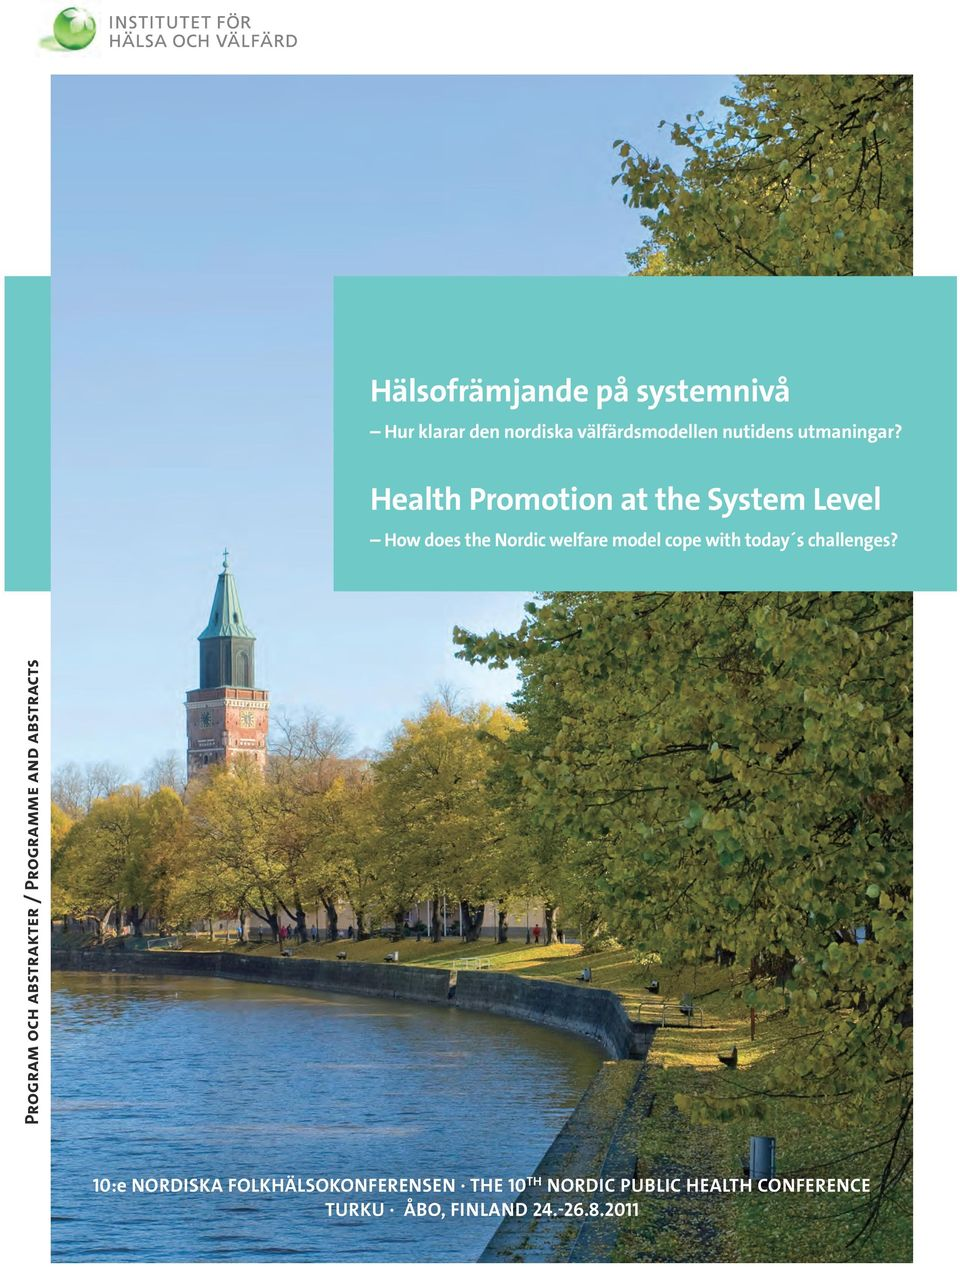 Health Promotion at the System Level How does the Nordic welfare model cope with today